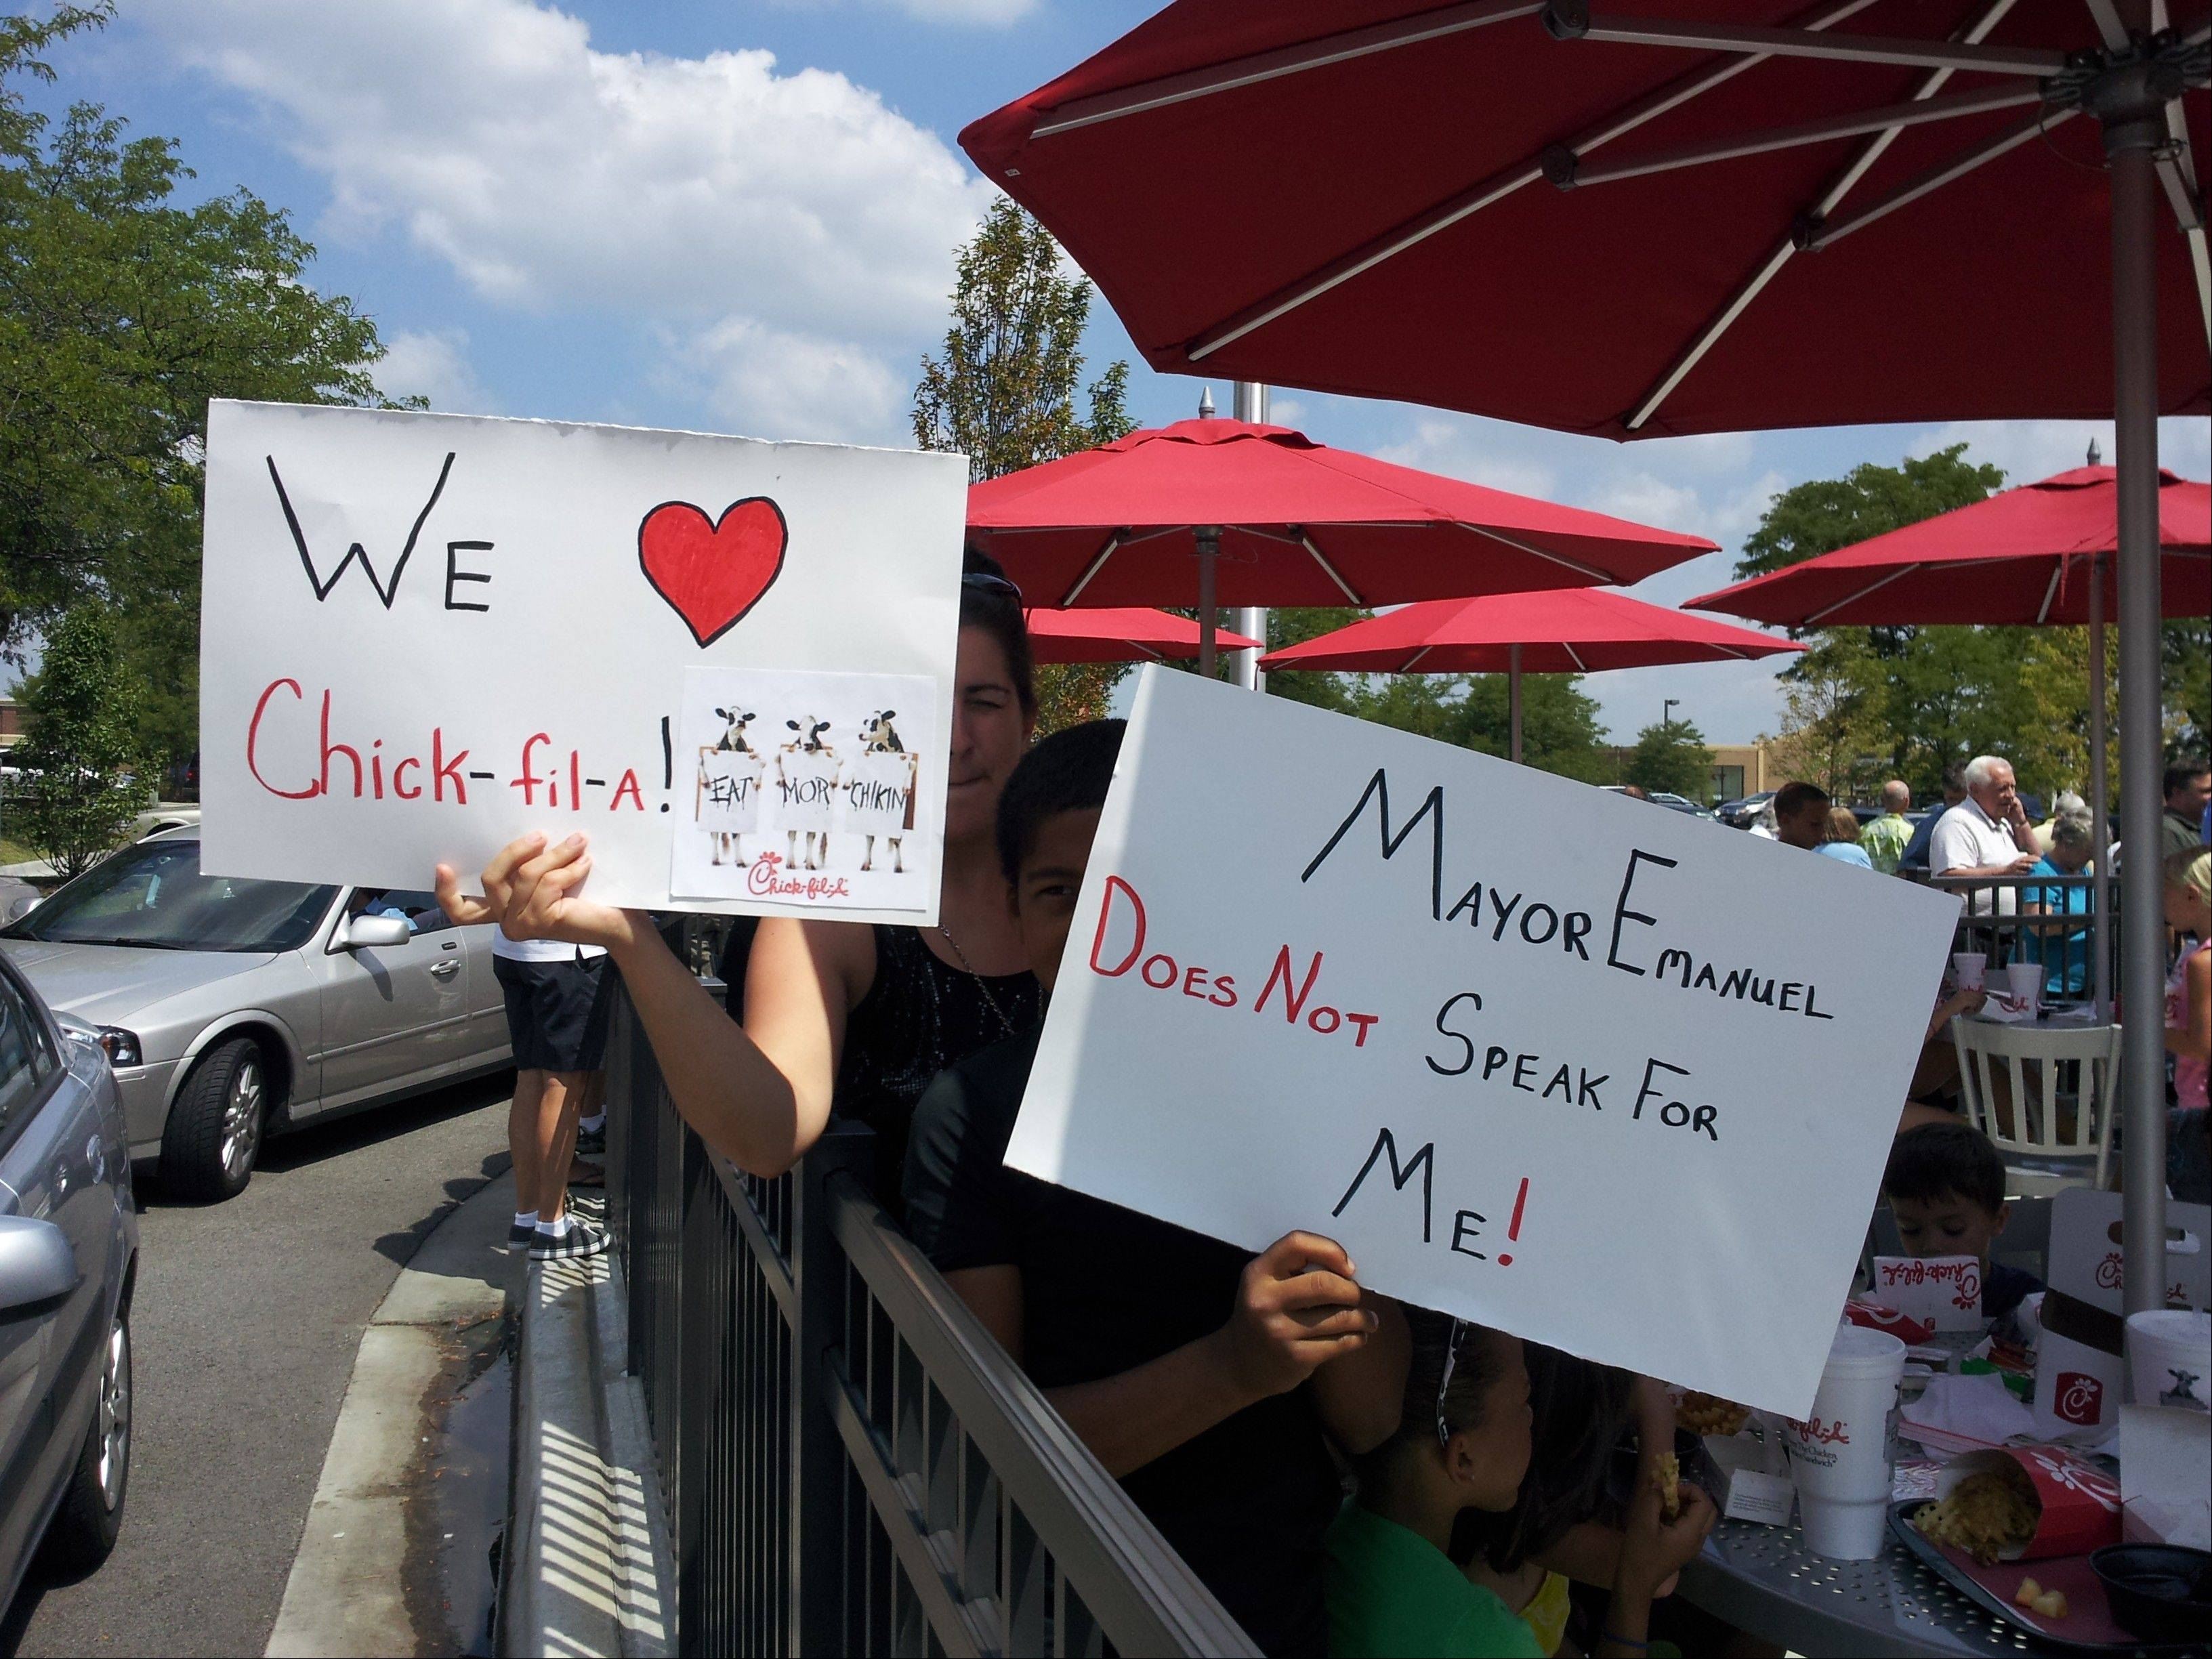 Protests were sparked in Schaumburg and elsewhere regarding the president of Chick-fil-A's stance against gay marriage.